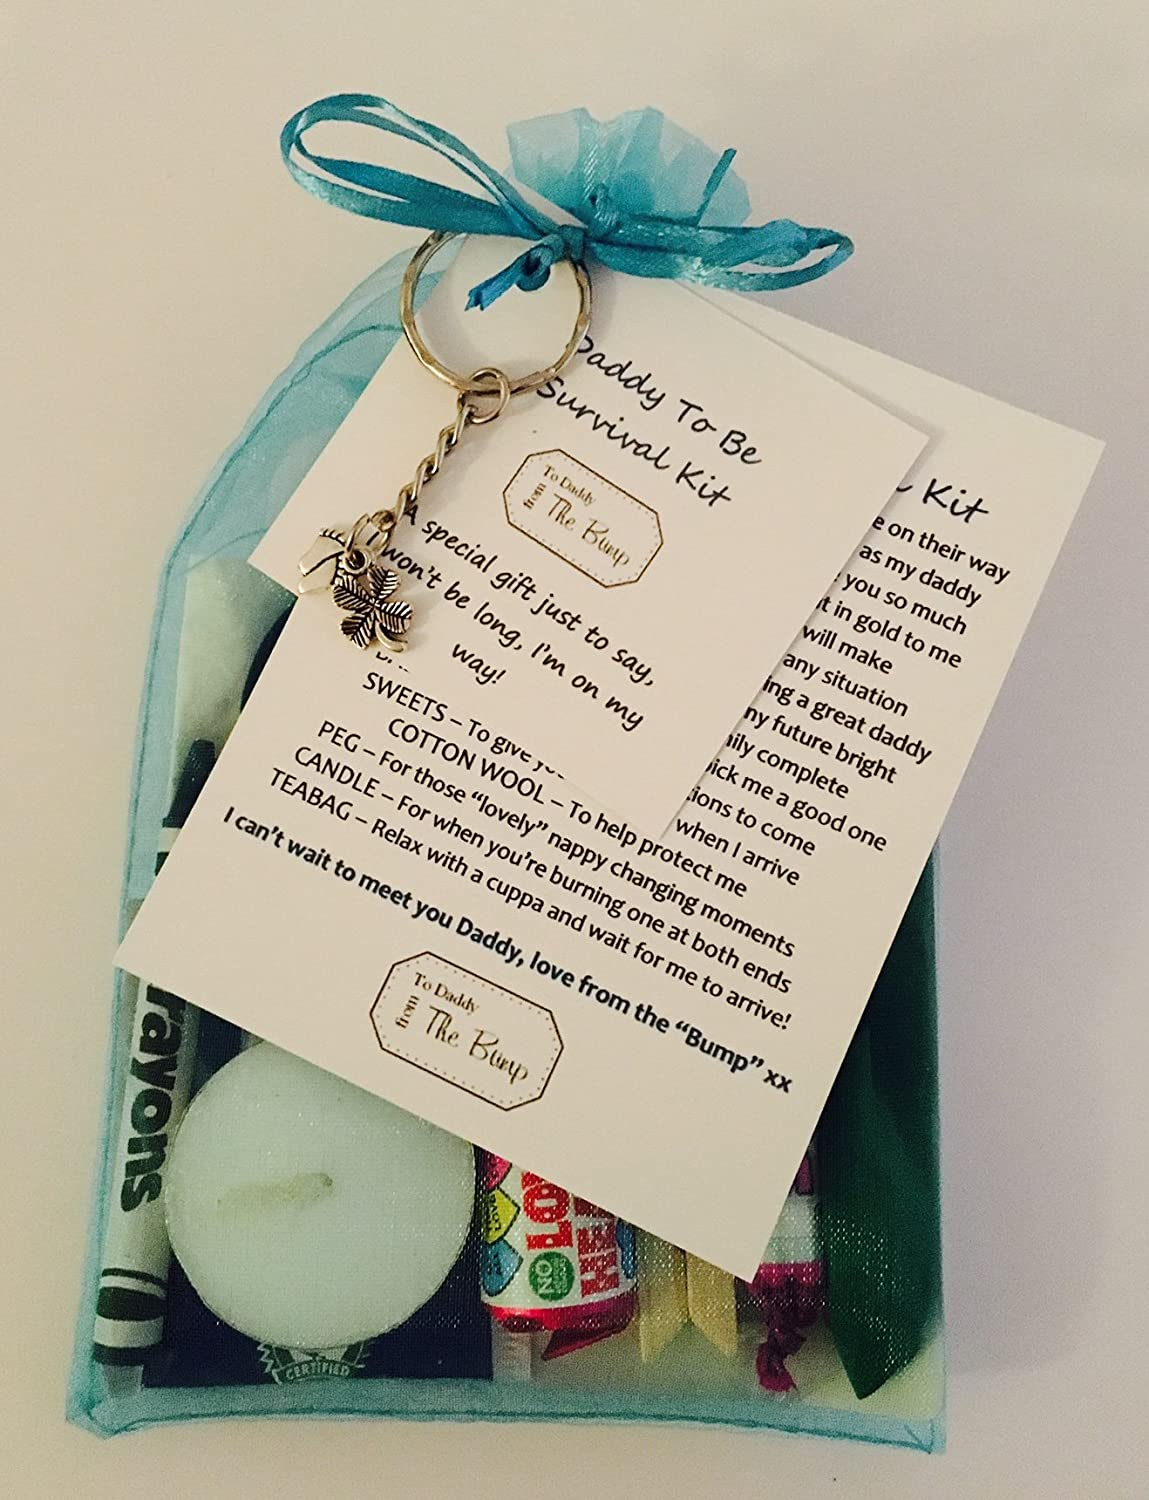 New Daddy To Be Survival Kit Card From\